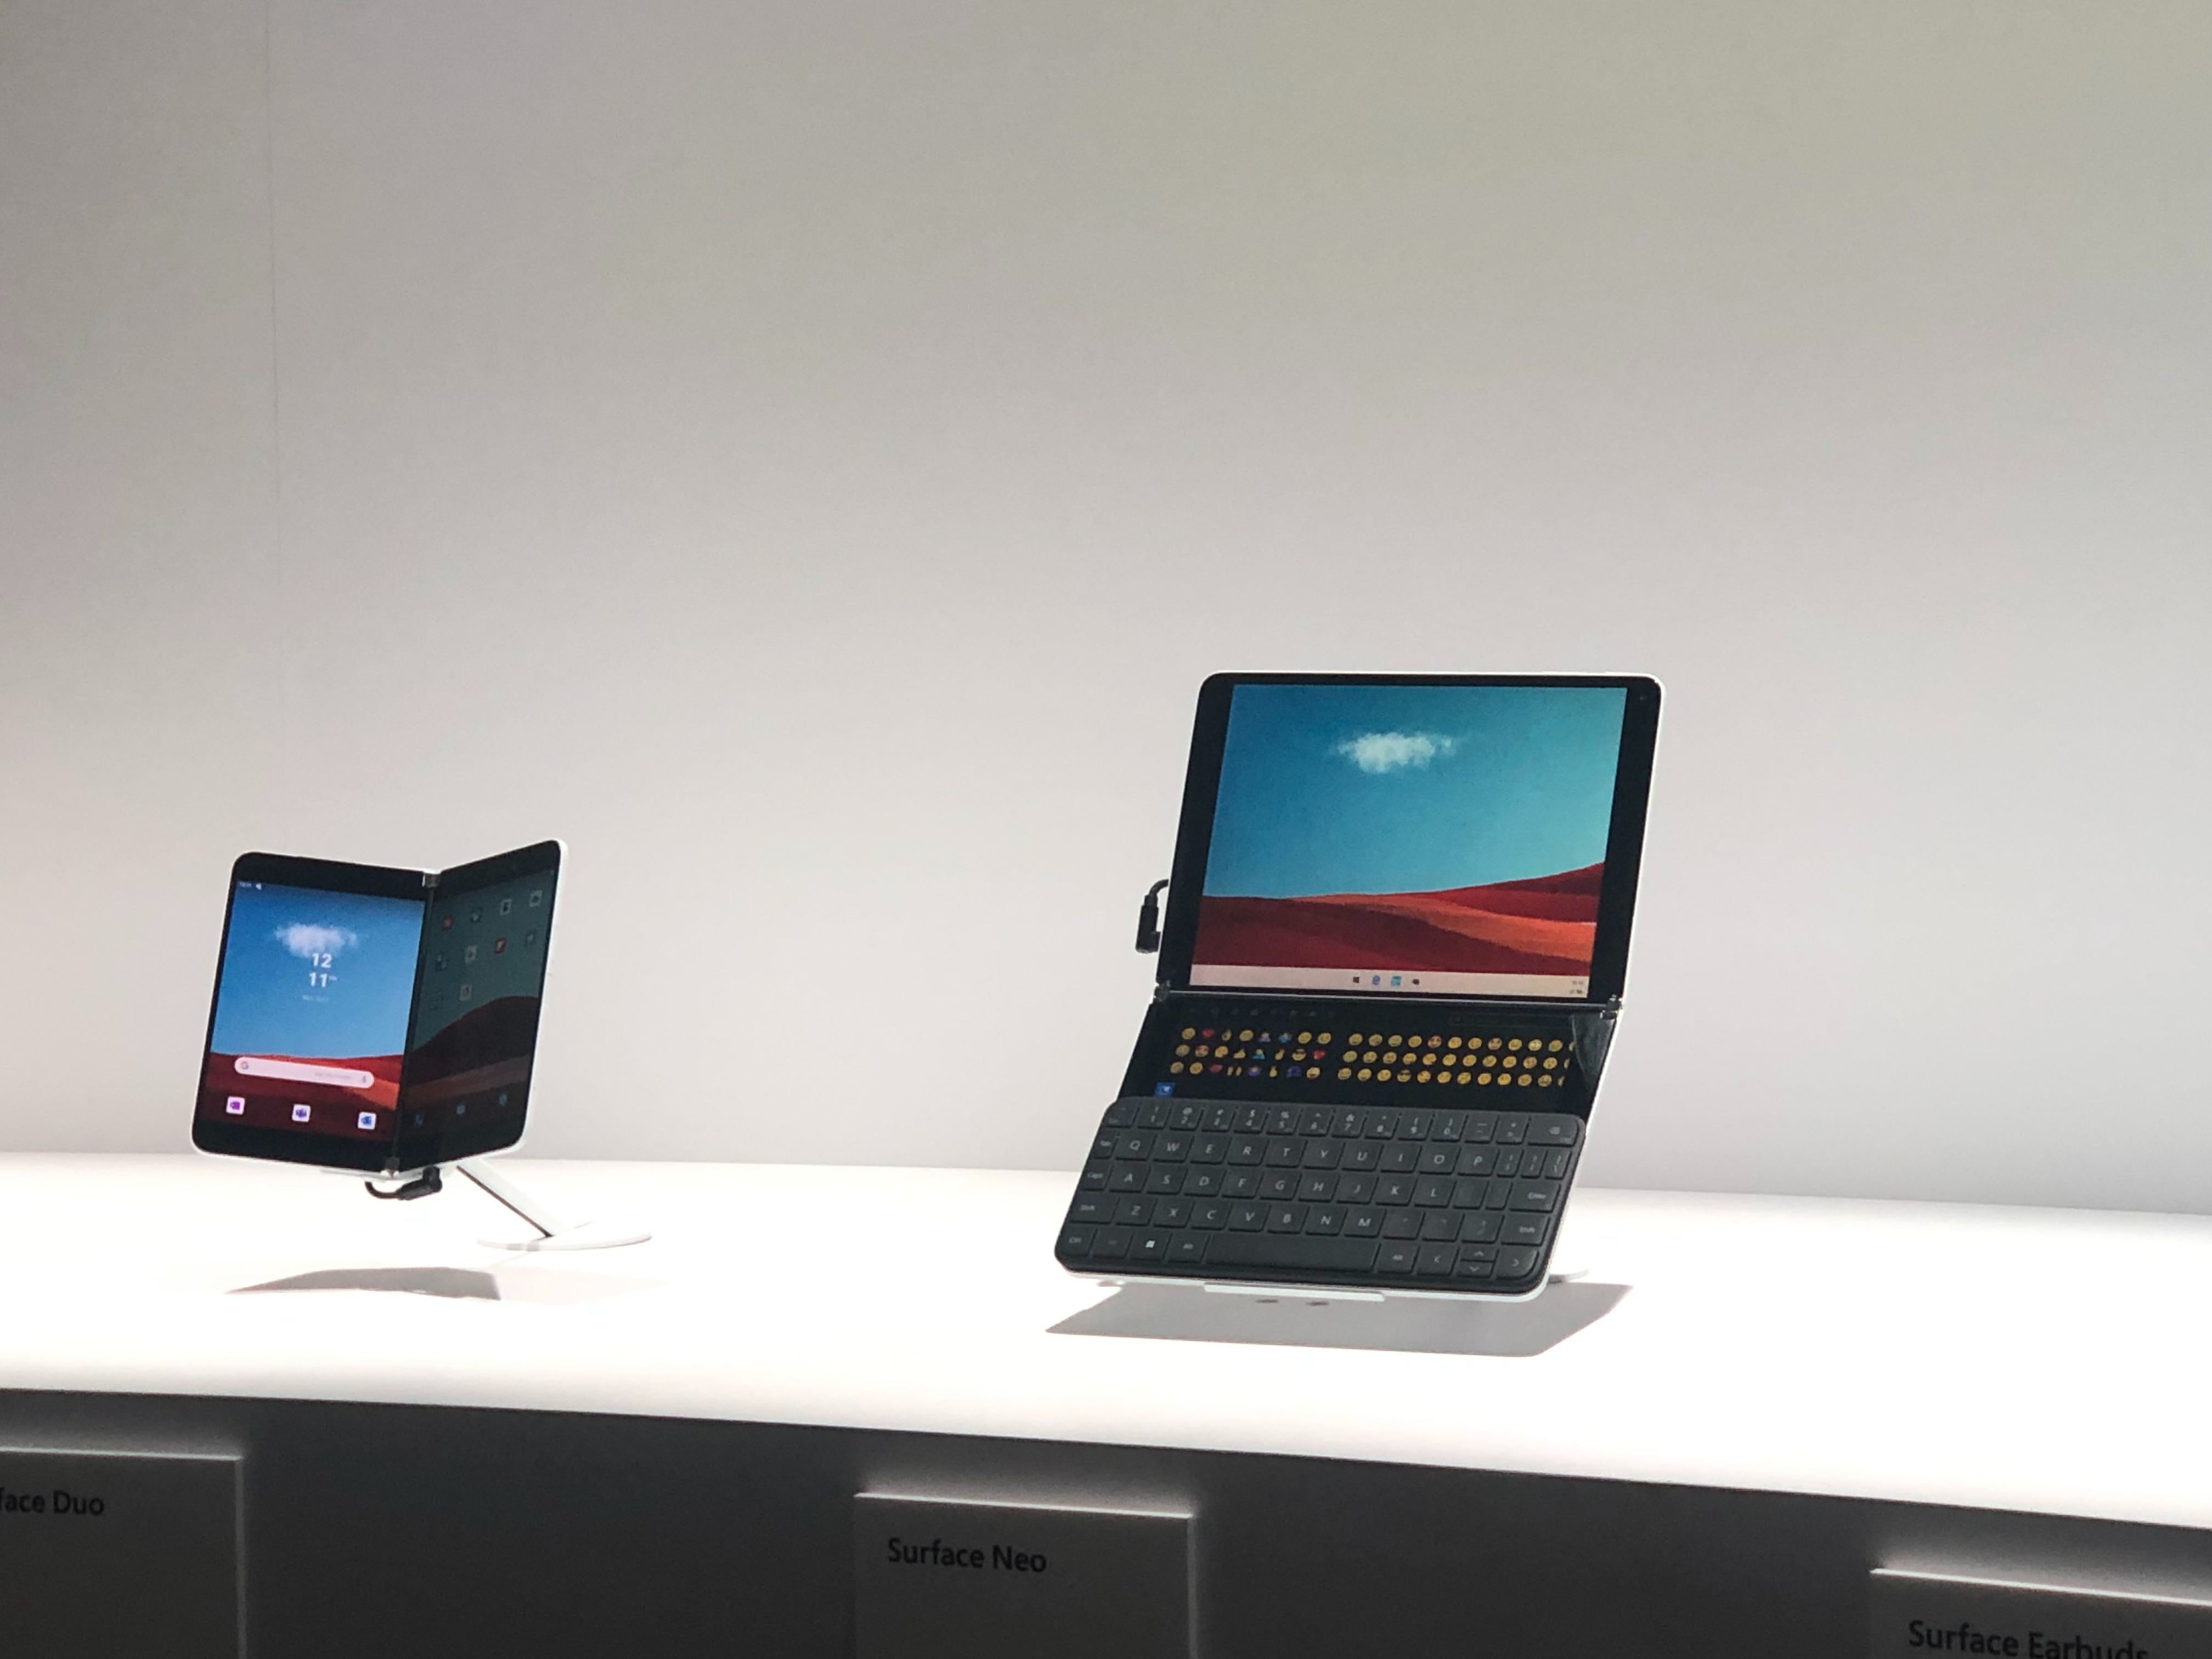 Microsoft Surface Neo and Duo